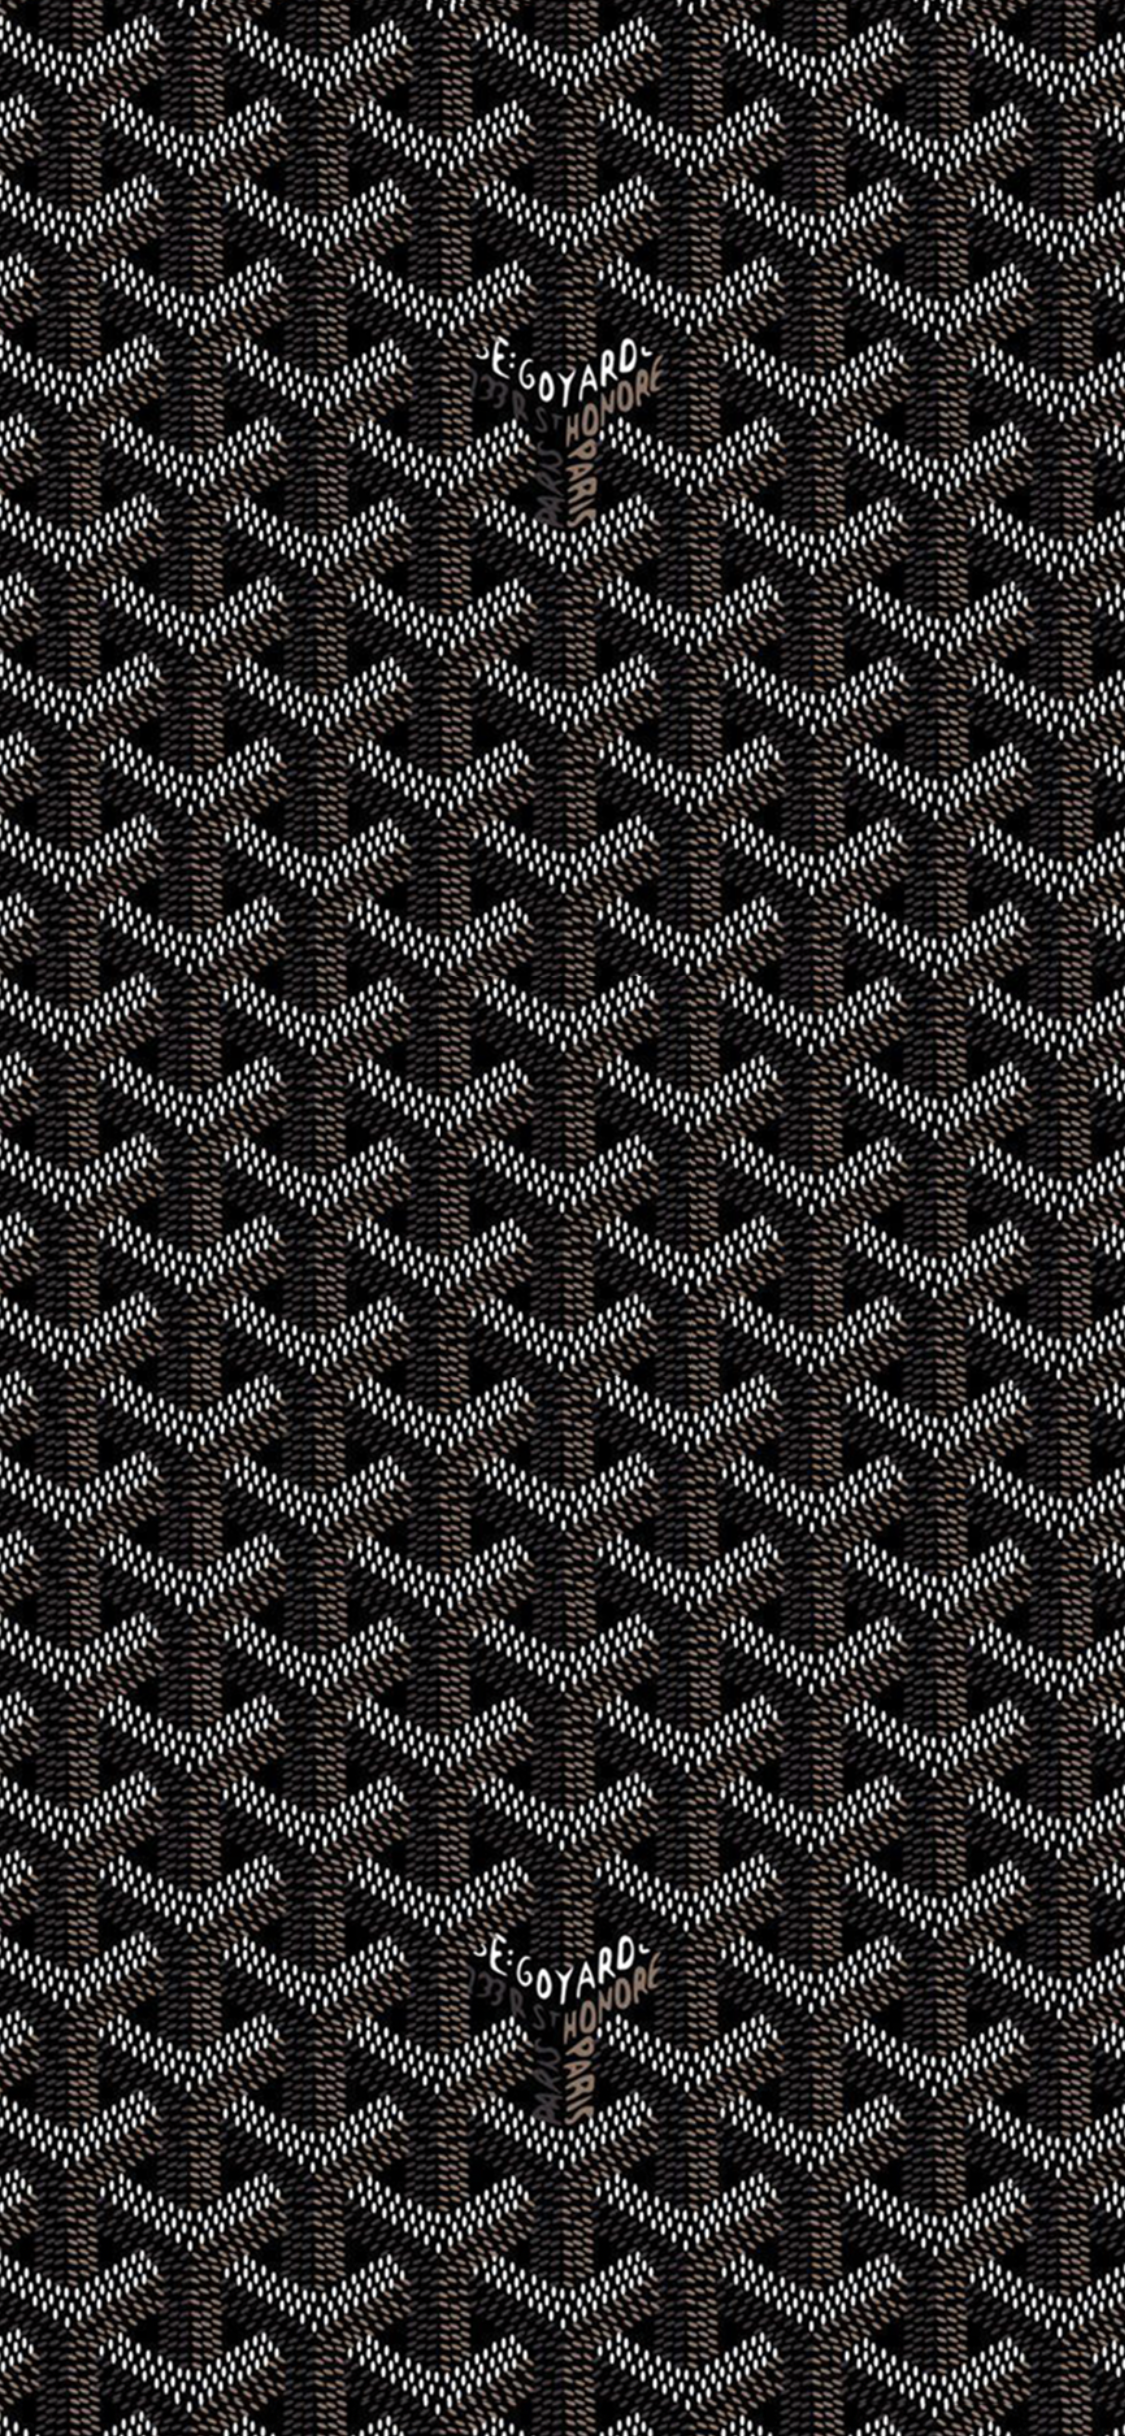 Goyard Bape Wallpaper Iphone Iphone Homescreen Wallpaper Iphone Wallpaper